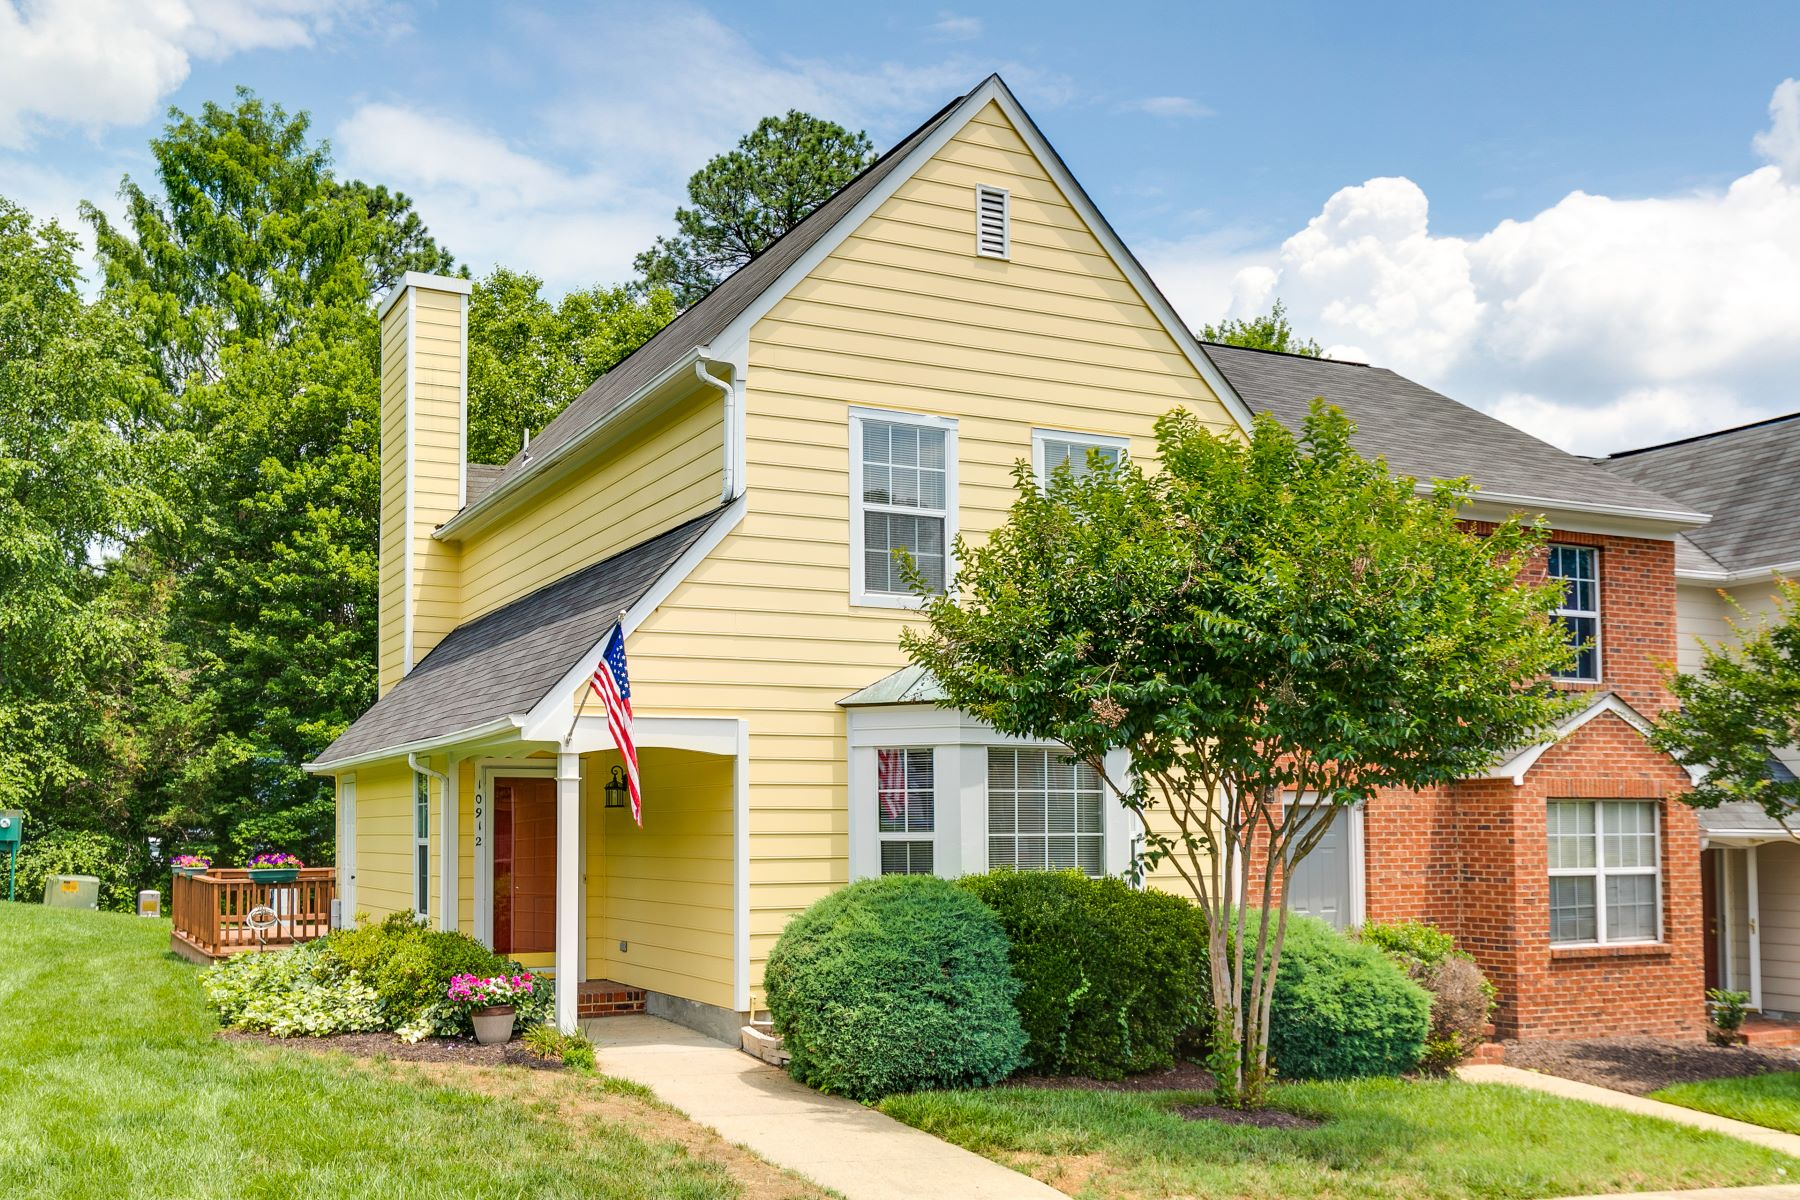 townhouses для того Продажа на 10912 Bush Lake Lane, Glen Allen, Va, 23060 Glen Allen, Виргиния 23060 Соединенные Штаты